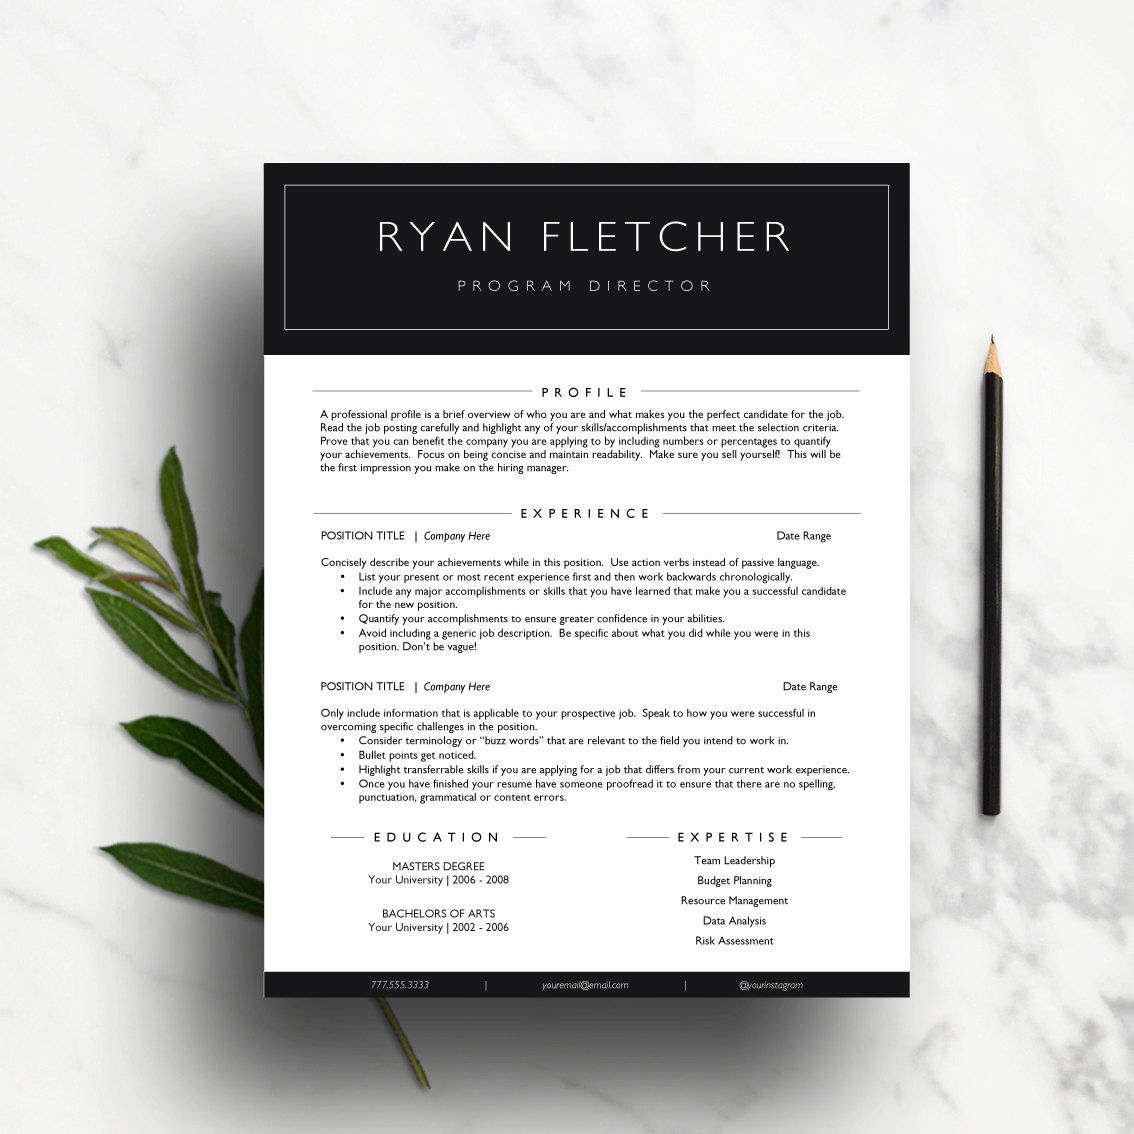 Awesome 1 Page Resume Format Free Download Huge 10 Envelope Template Round 15 Year Old Resume Sample 18th Invitation Templates Youthful 1and1 Templates Coloured2 Binder Spine Template A Professionally Designed Teacher Resume Template Created By A ..